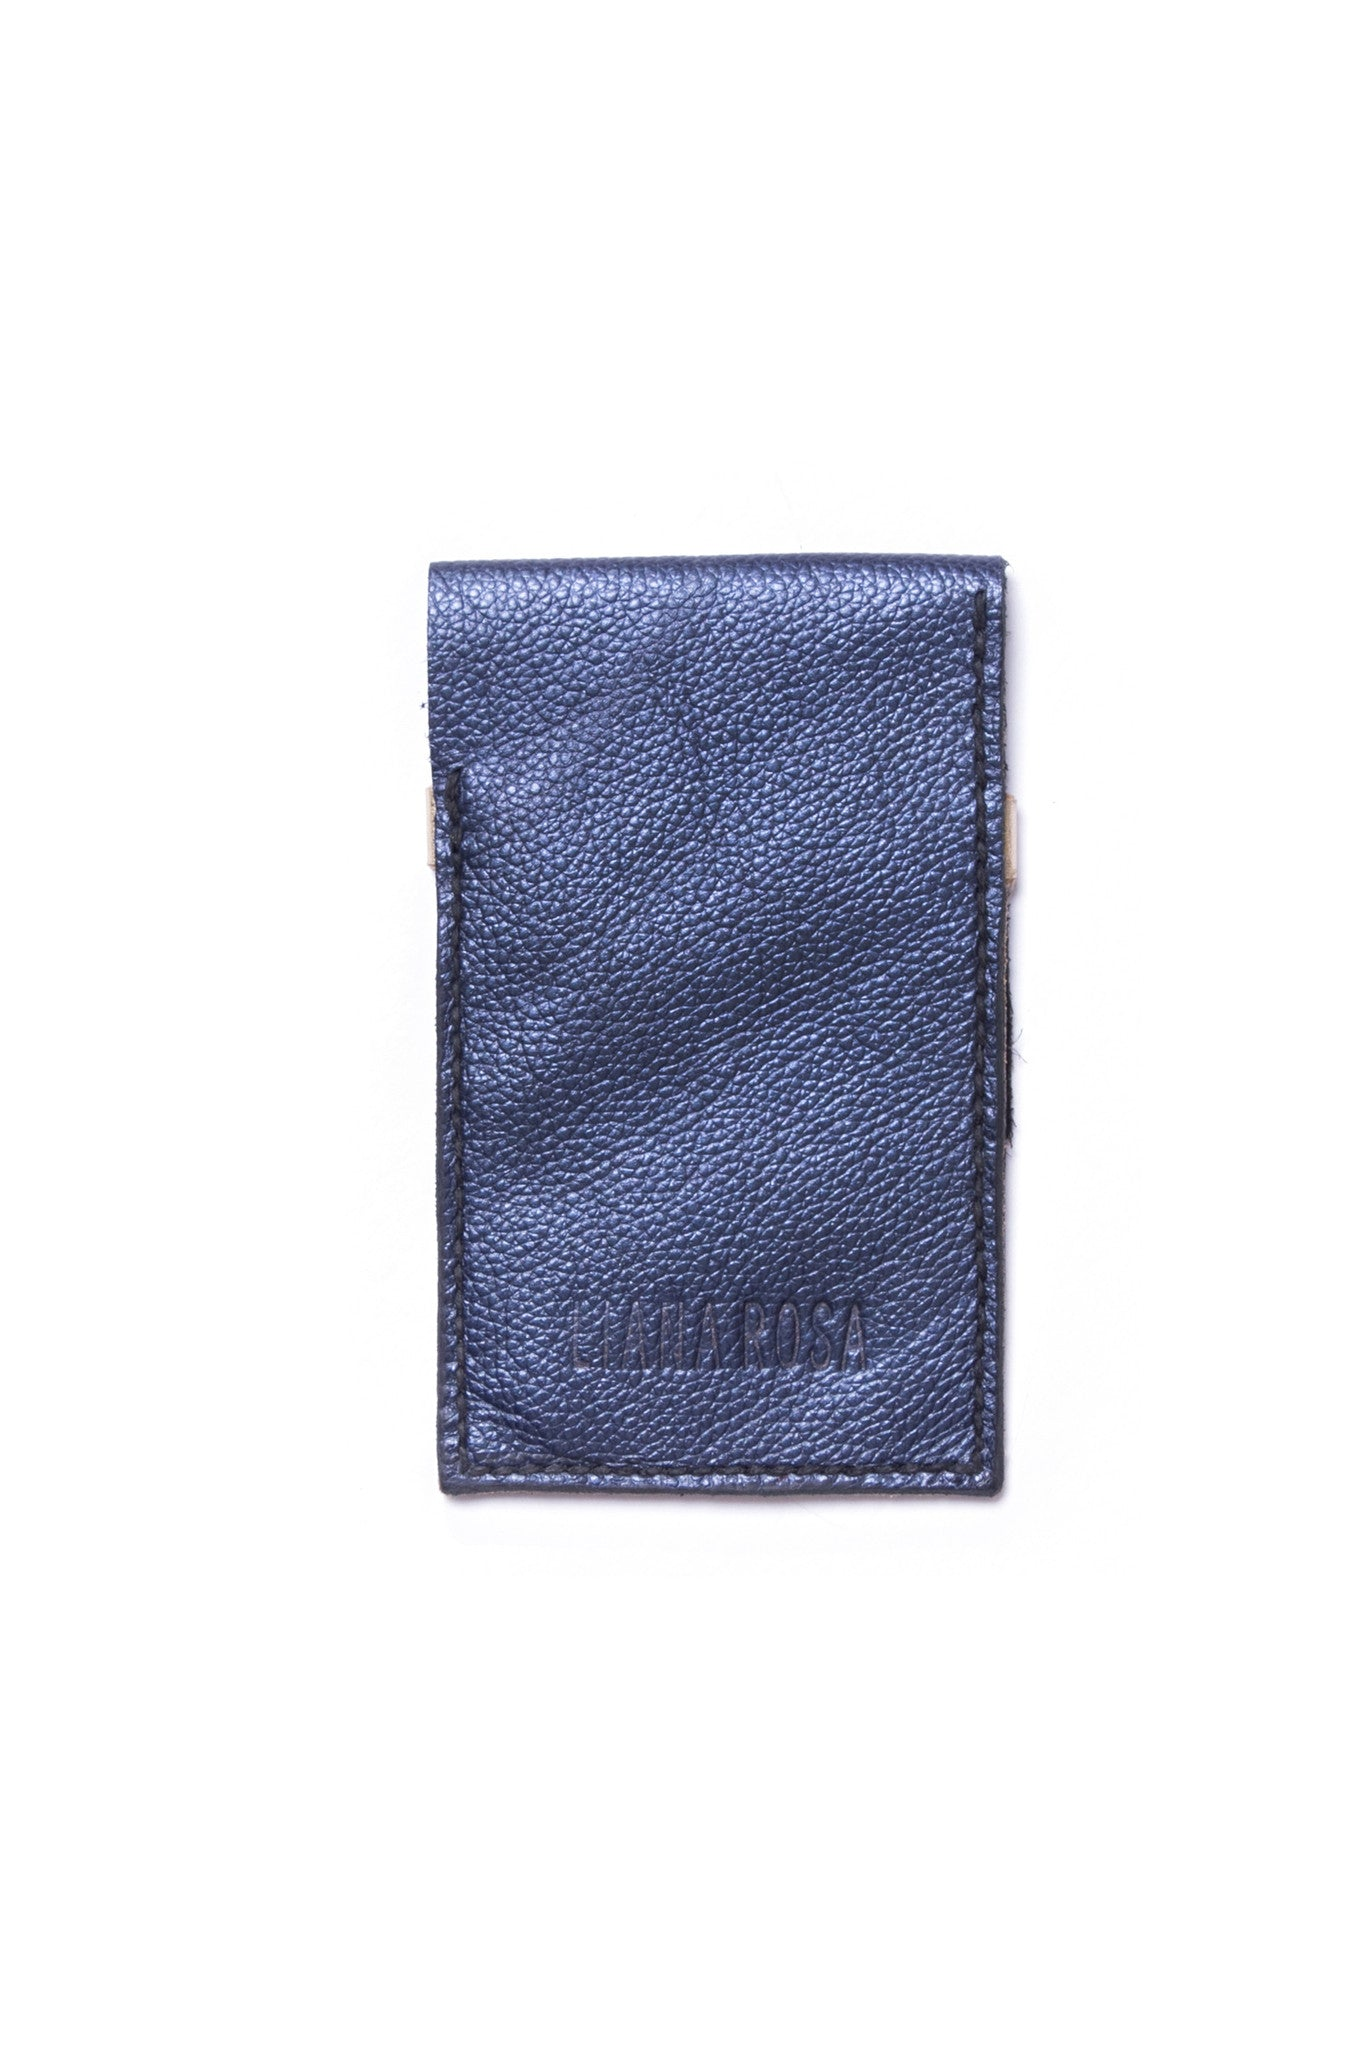 Stella Tricolored Black Metallic Blue Gold Leather Raw iPhone Sleeve Back View by Liana Rosa